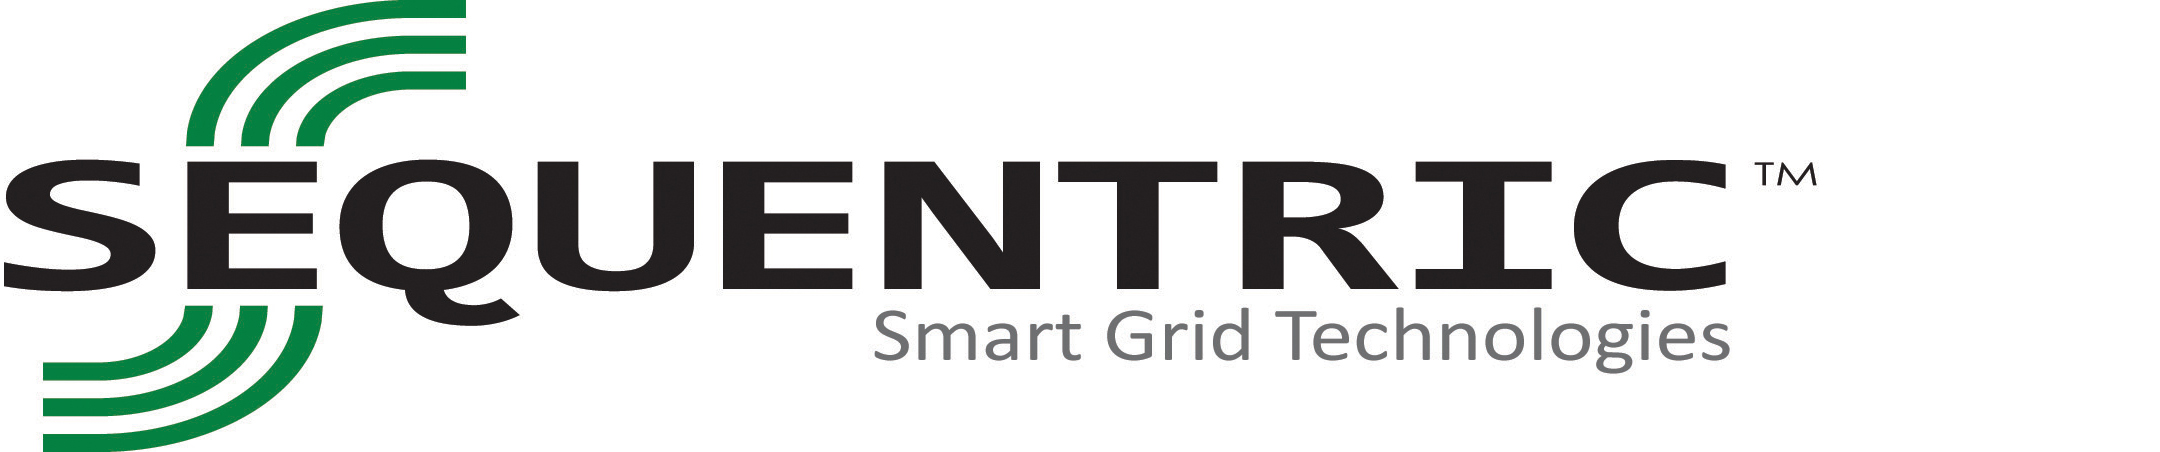 Sequentric | Smart Grid Technologies